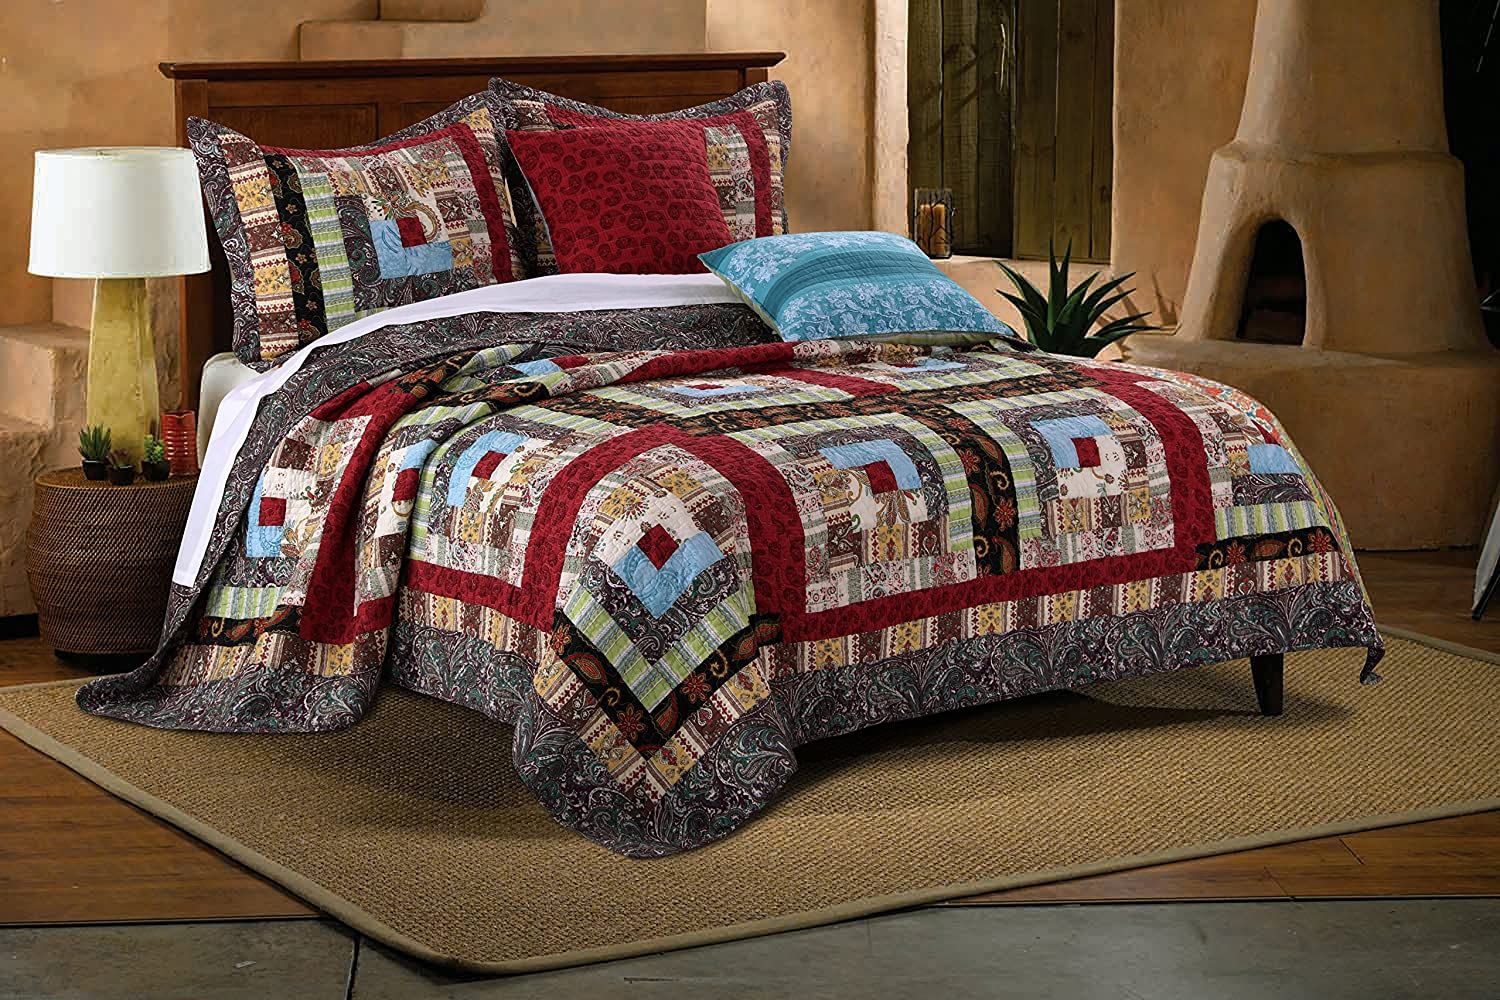 Greenland Home Colorado Lodge Quilt Set, 5-Piece King/Cal King, Multi